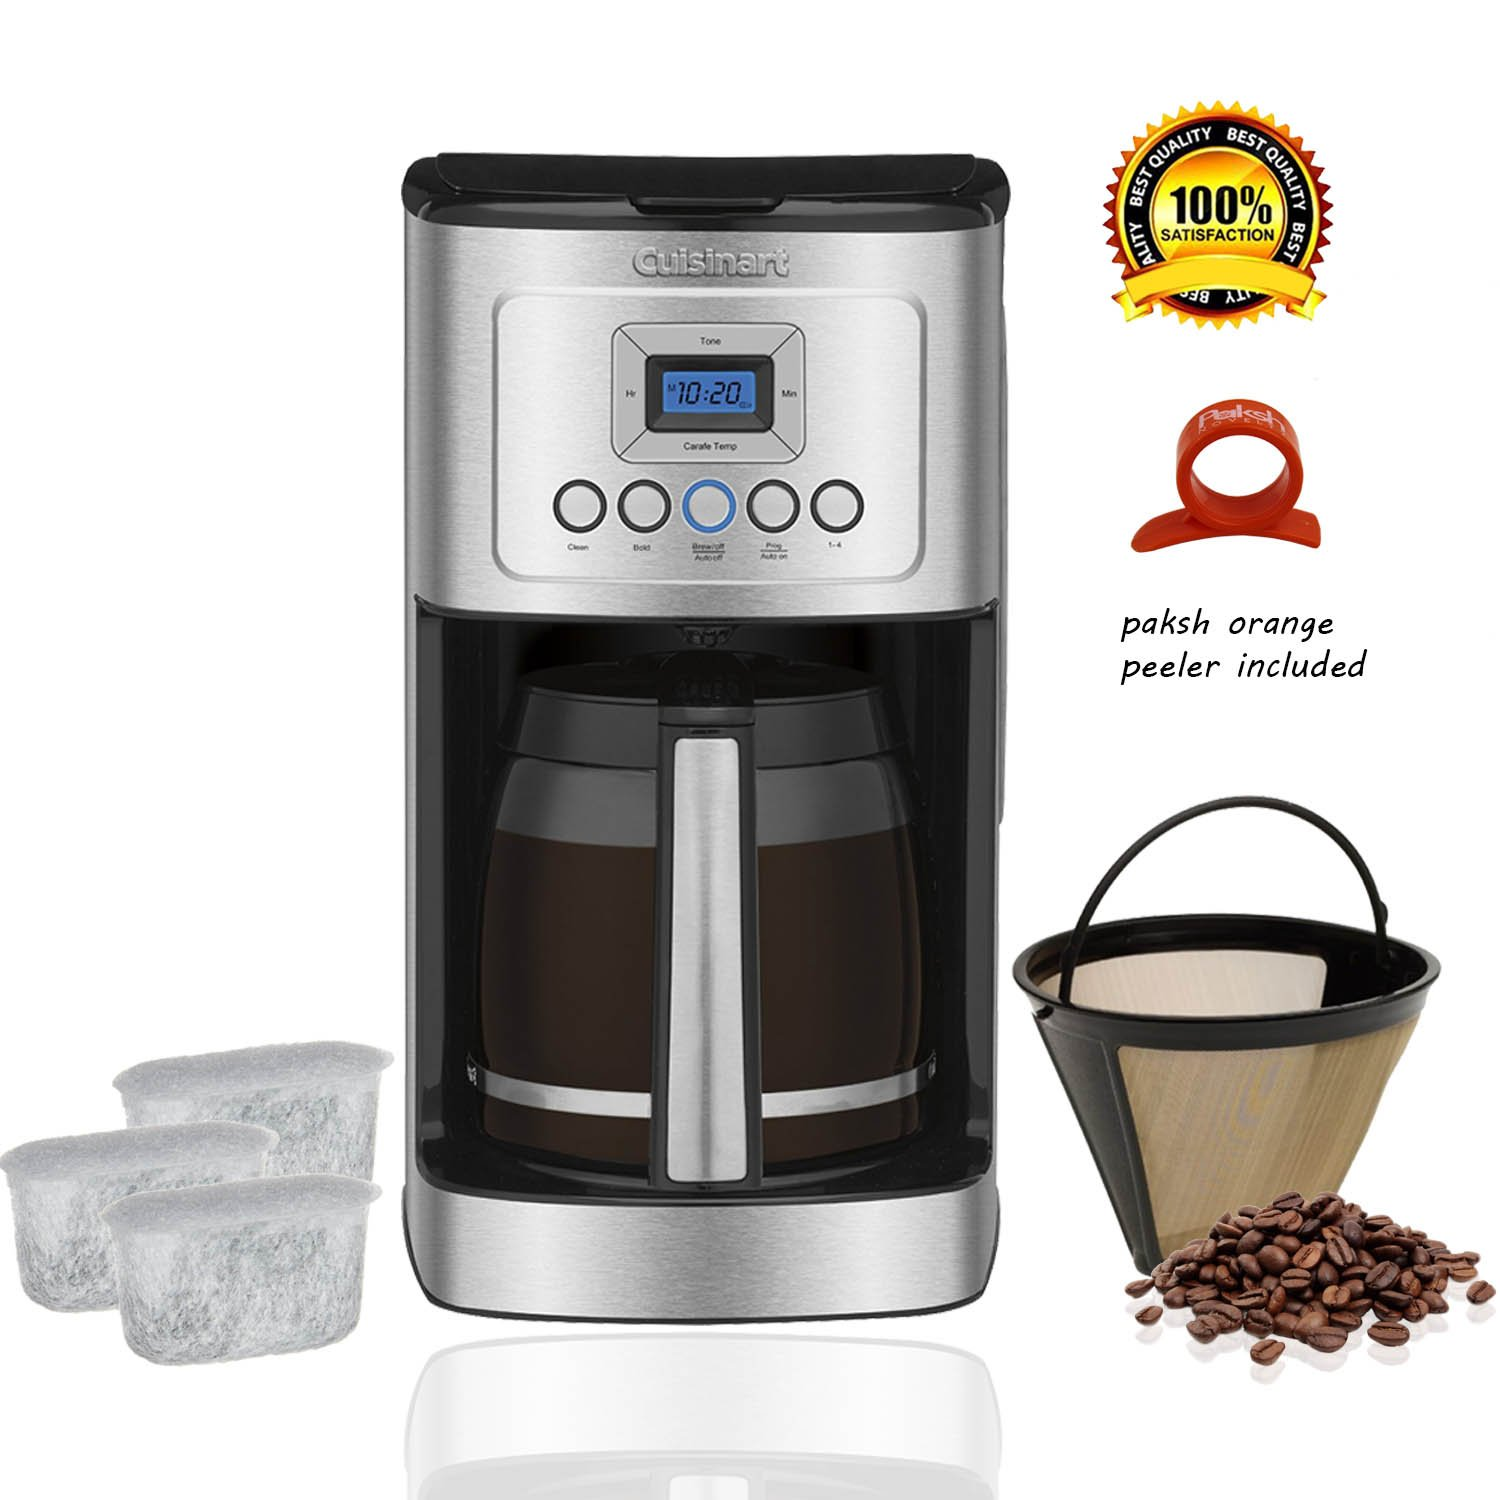 Paksh / Cuisinart DCC-3200 14 Cup Programmable Stainless Steel Coffee Maker Machine with Glass Coffee Carafe with Gold Tone Filter GTF and 2 Pack Charcoal Water Filters